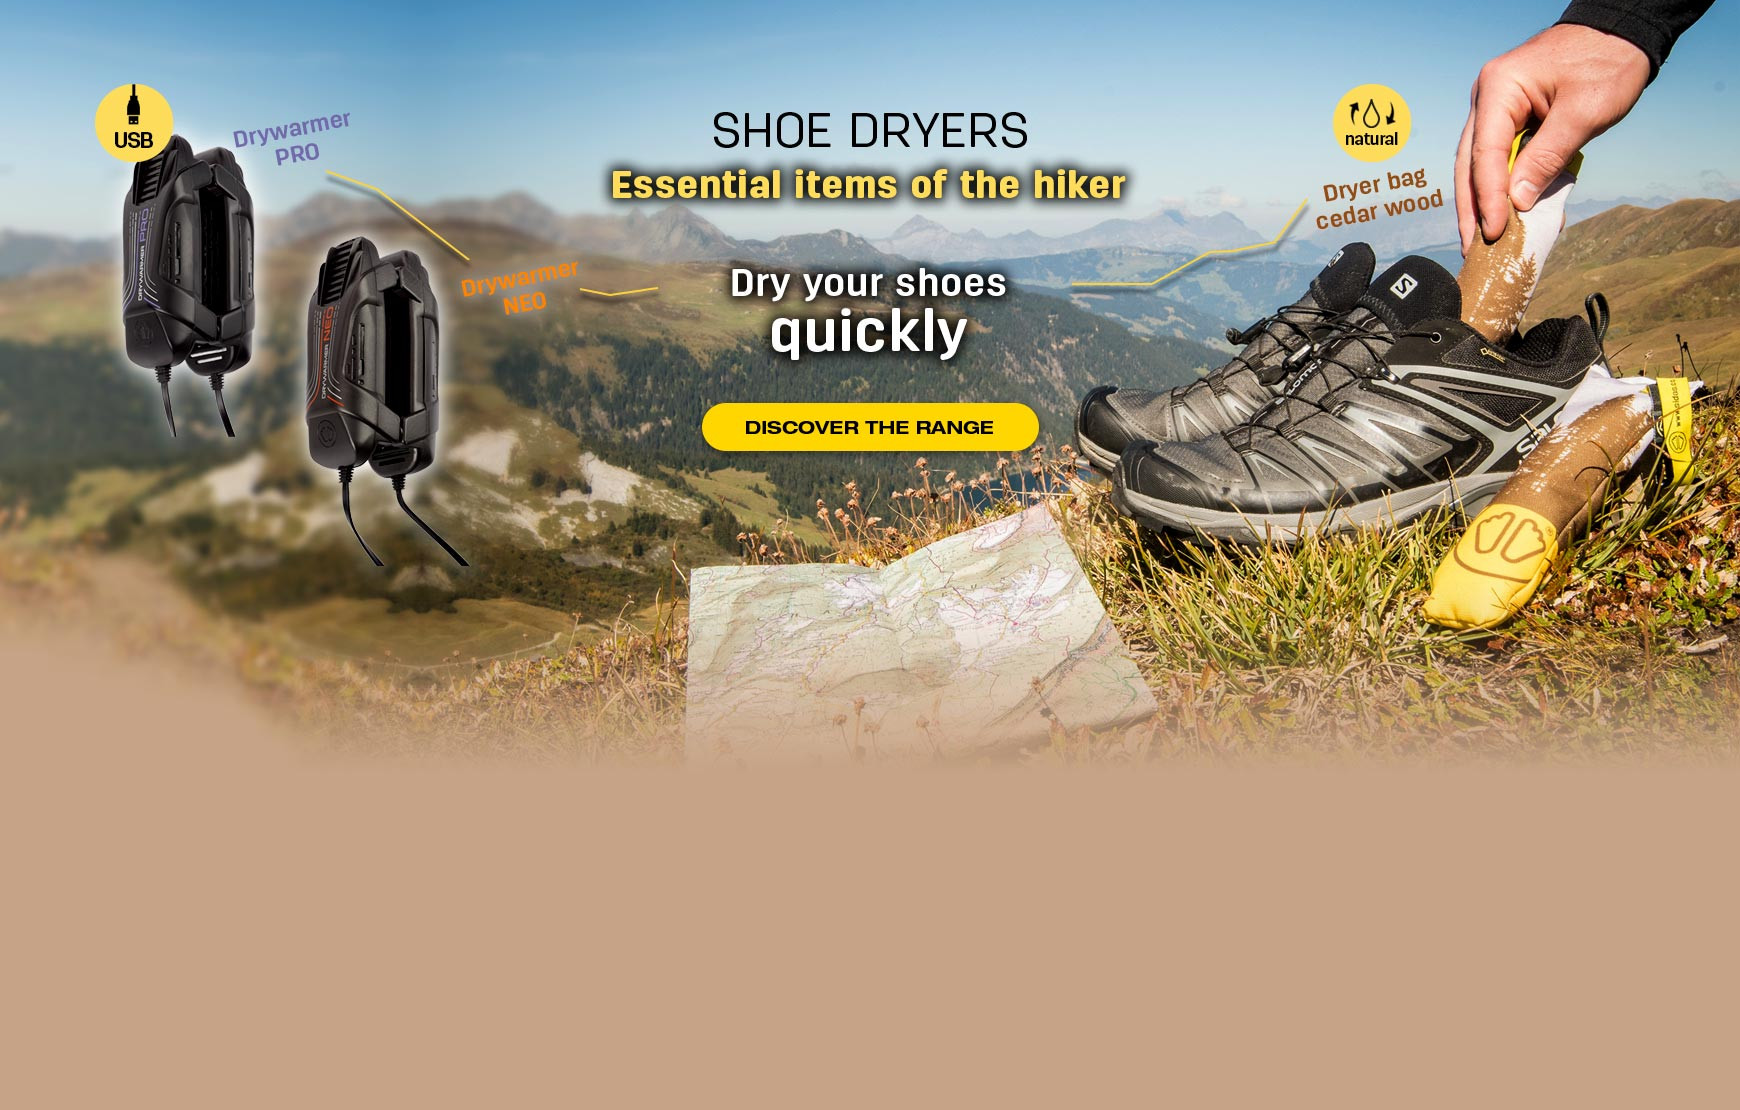 Dry your shoes quickly thanks to the dryers SIDAS